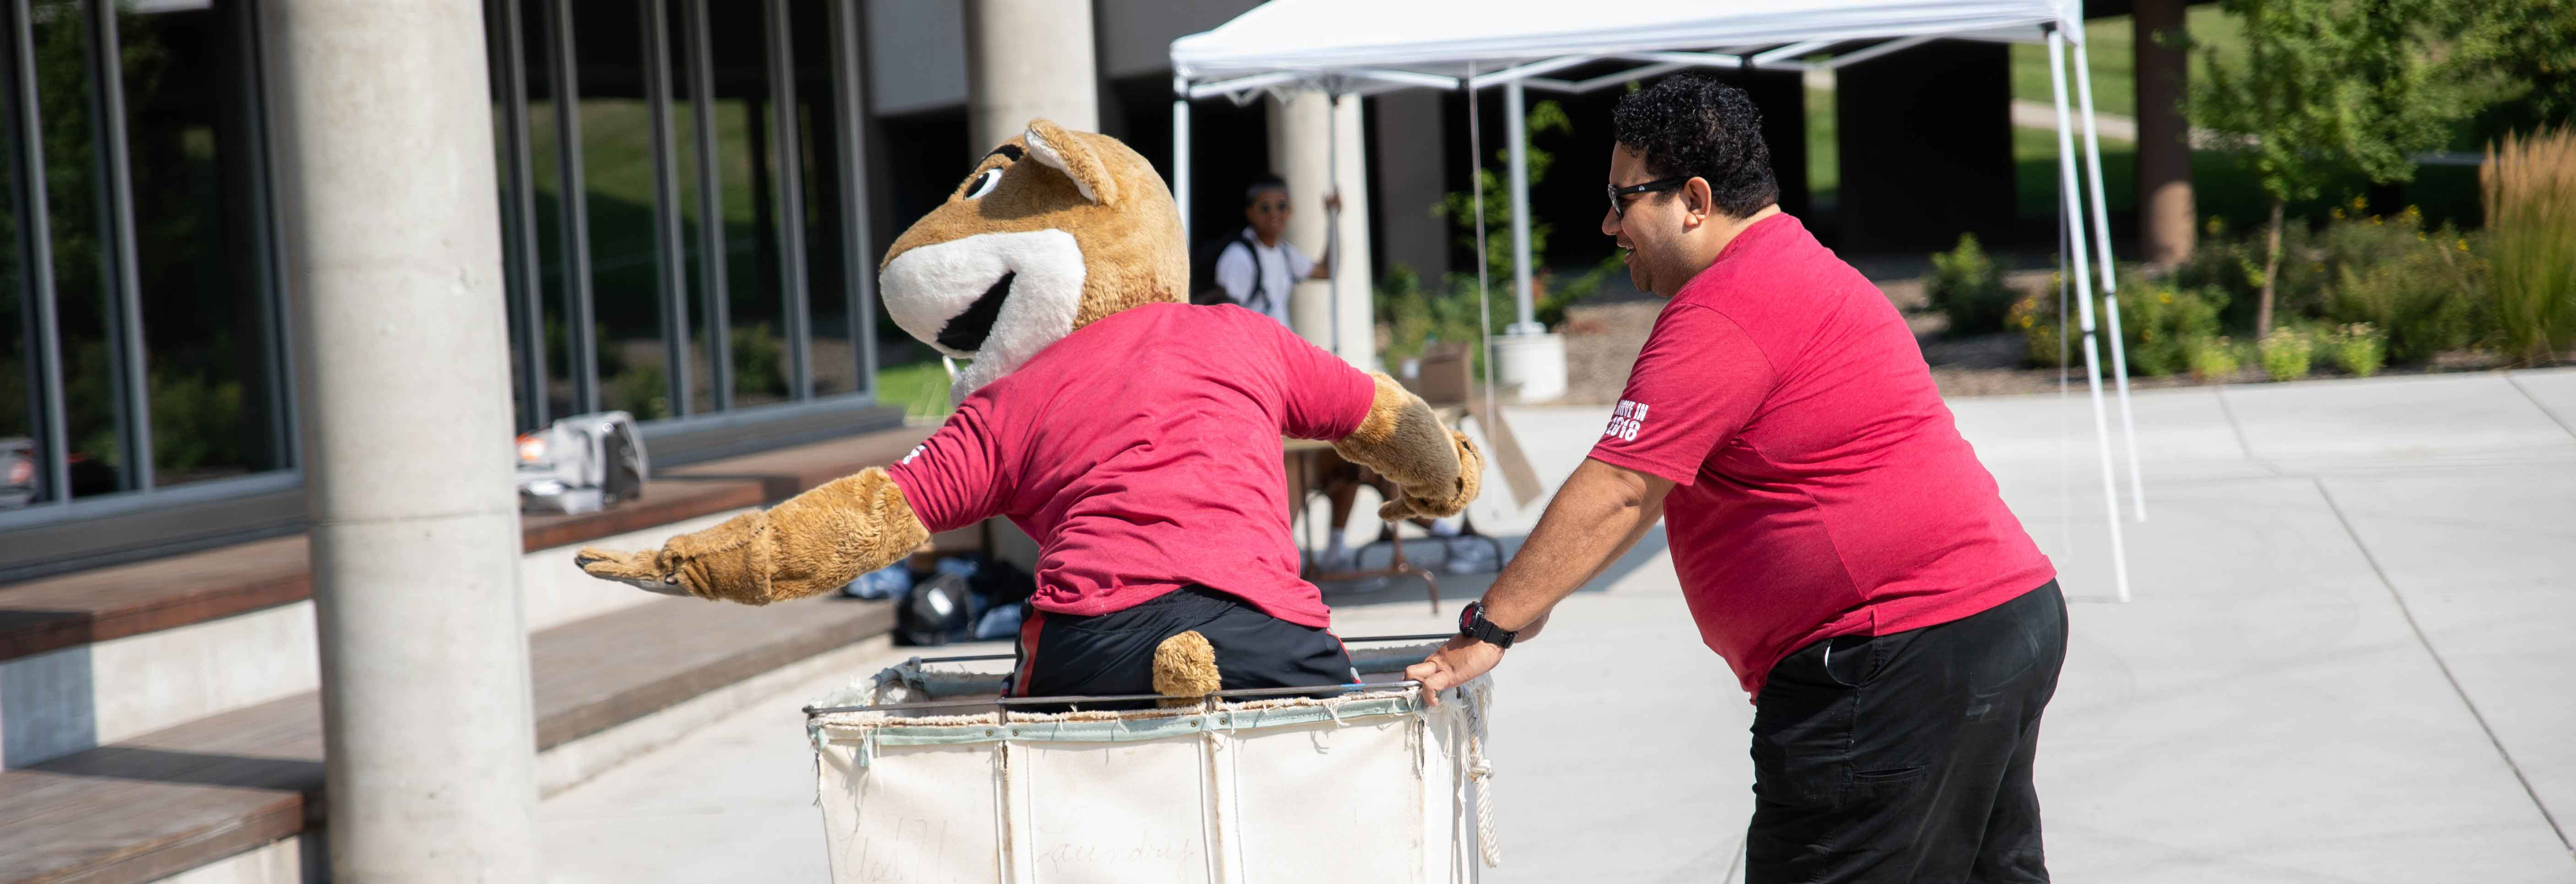 Butch Cougar mascot riding in cart